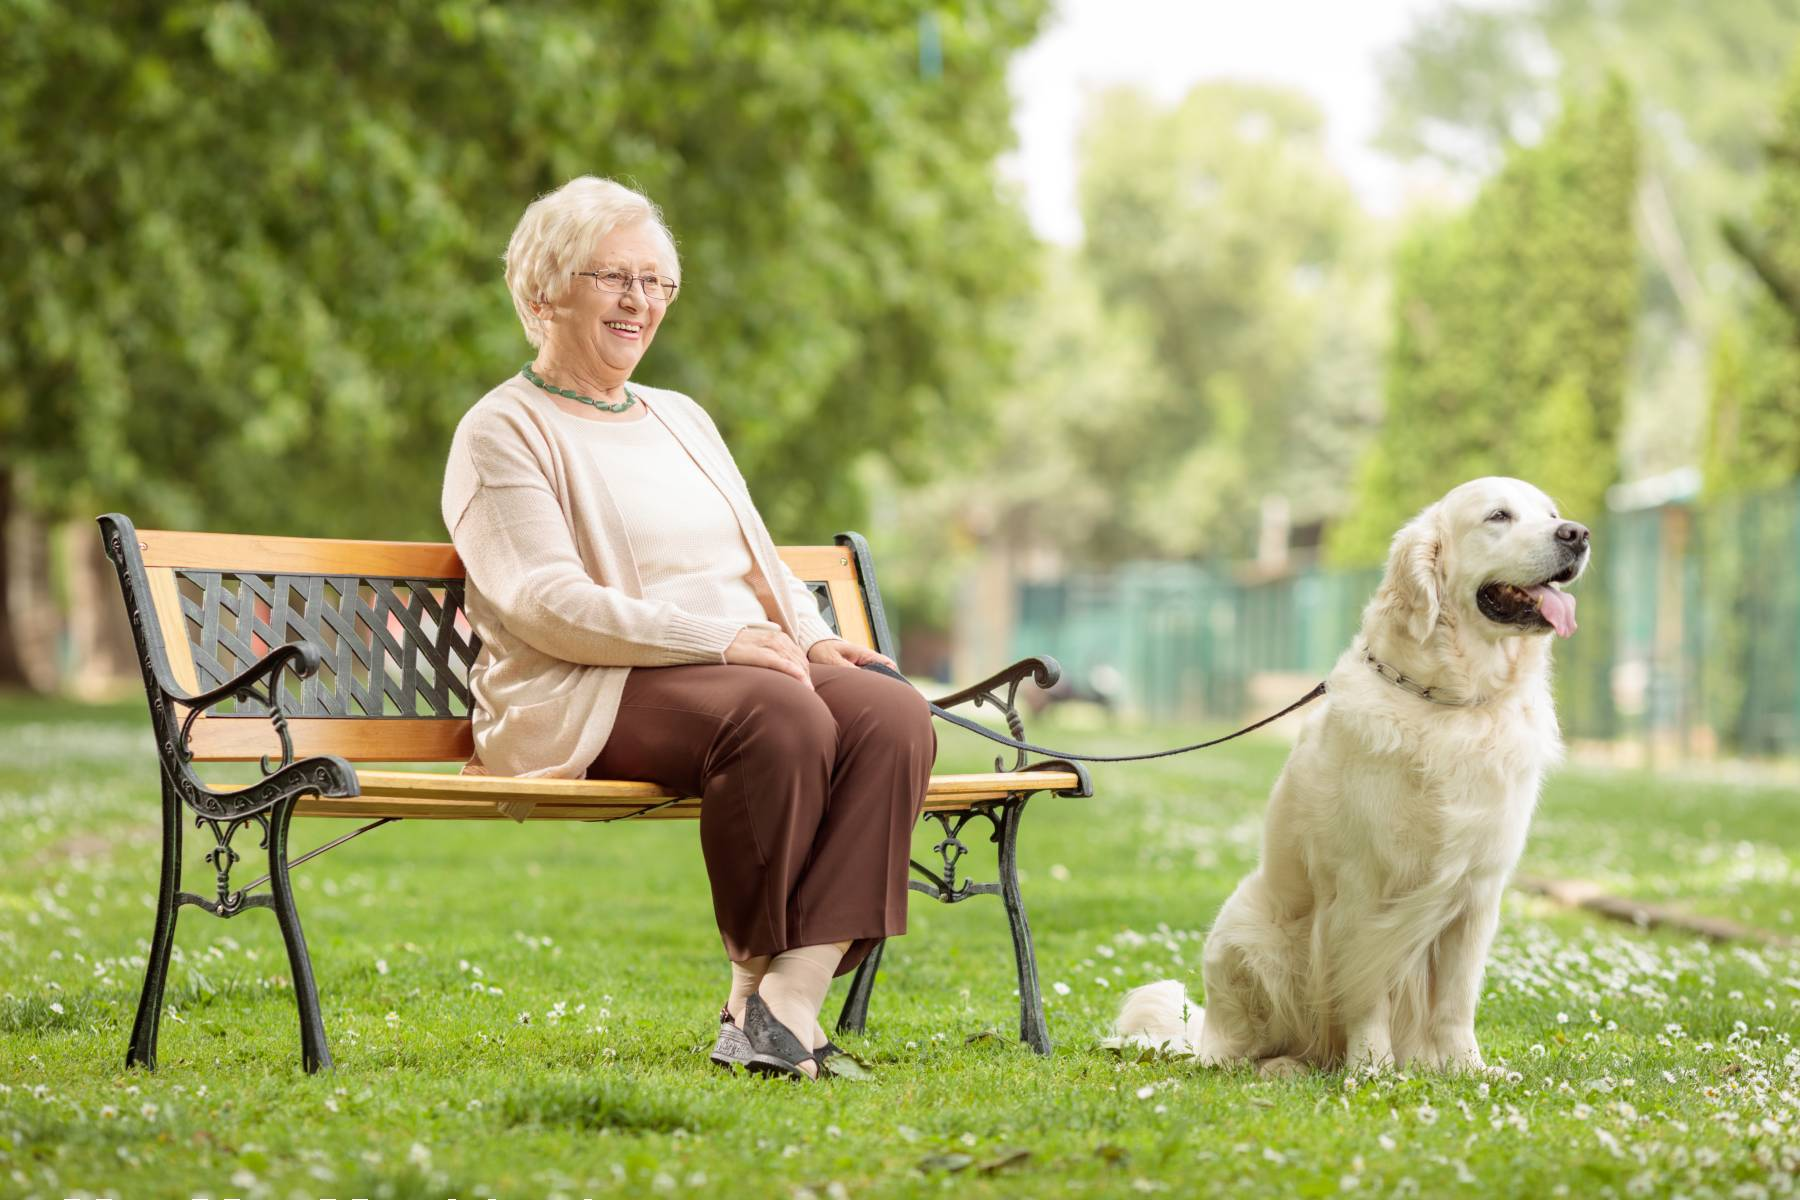 senior lady sitting on a bench with her dog